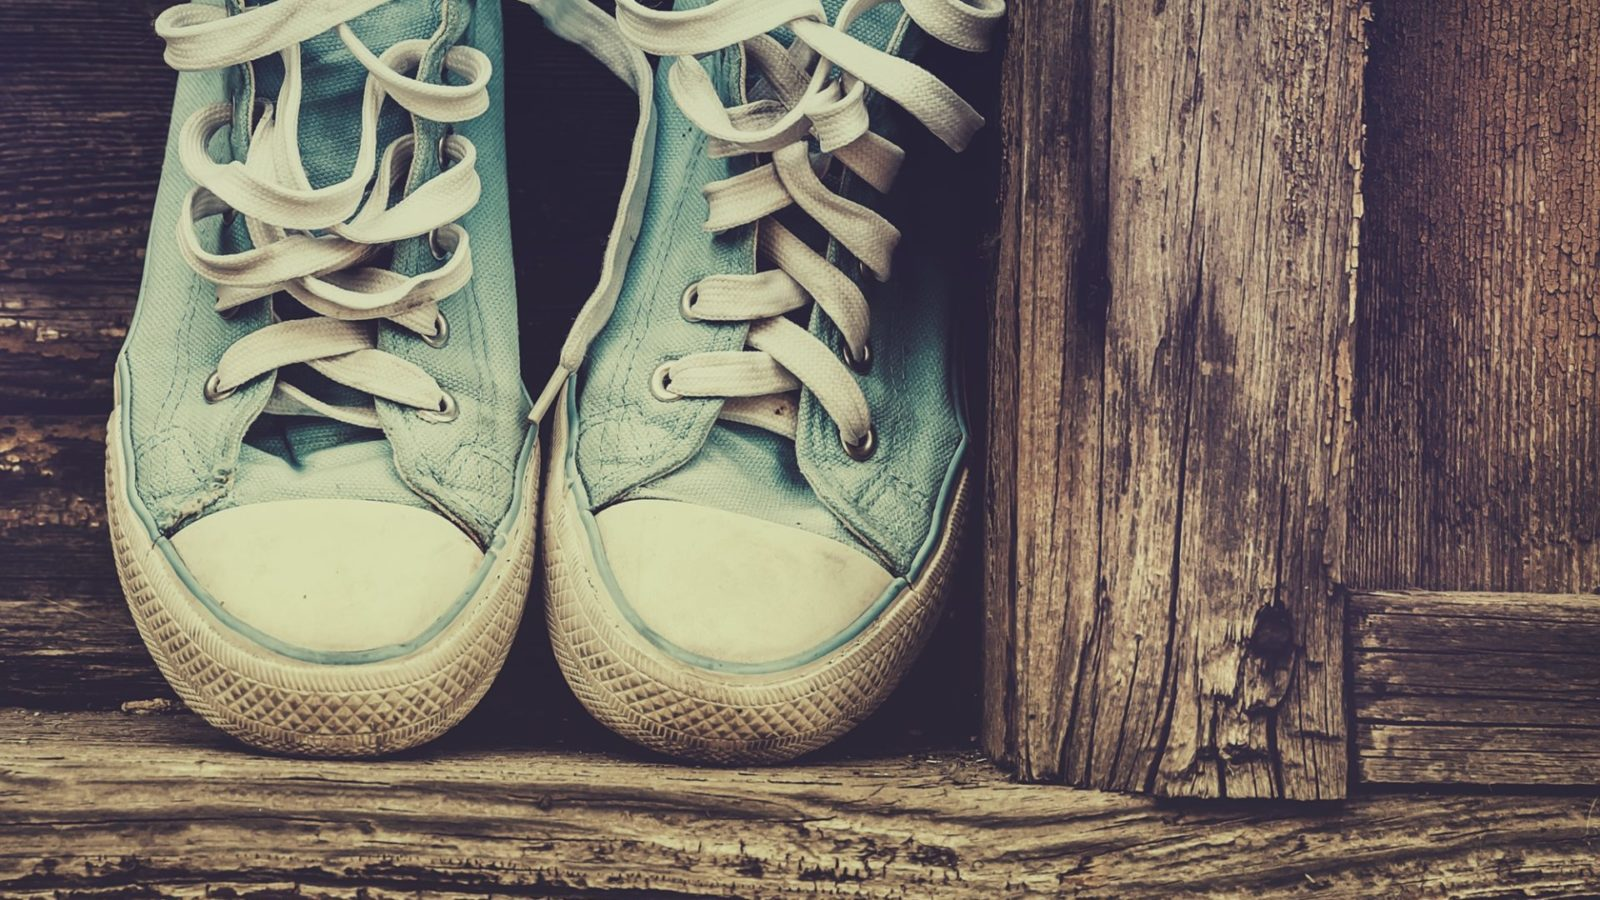 How to Remove Stinky Shoe Odor without Toxic Chemicals